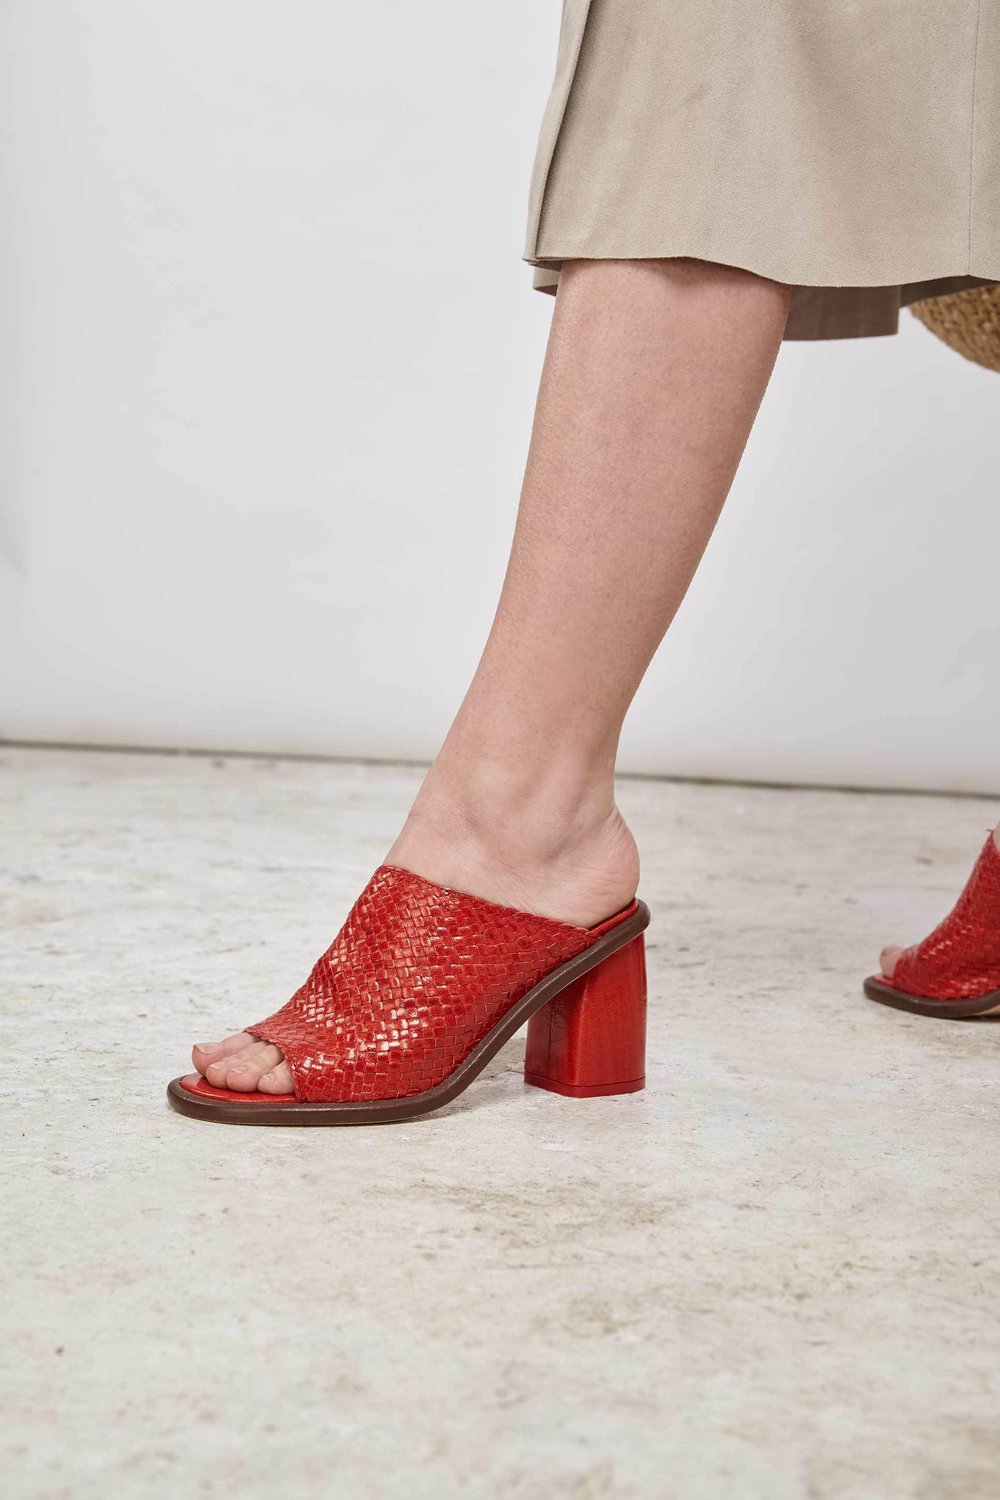 Miista red mules